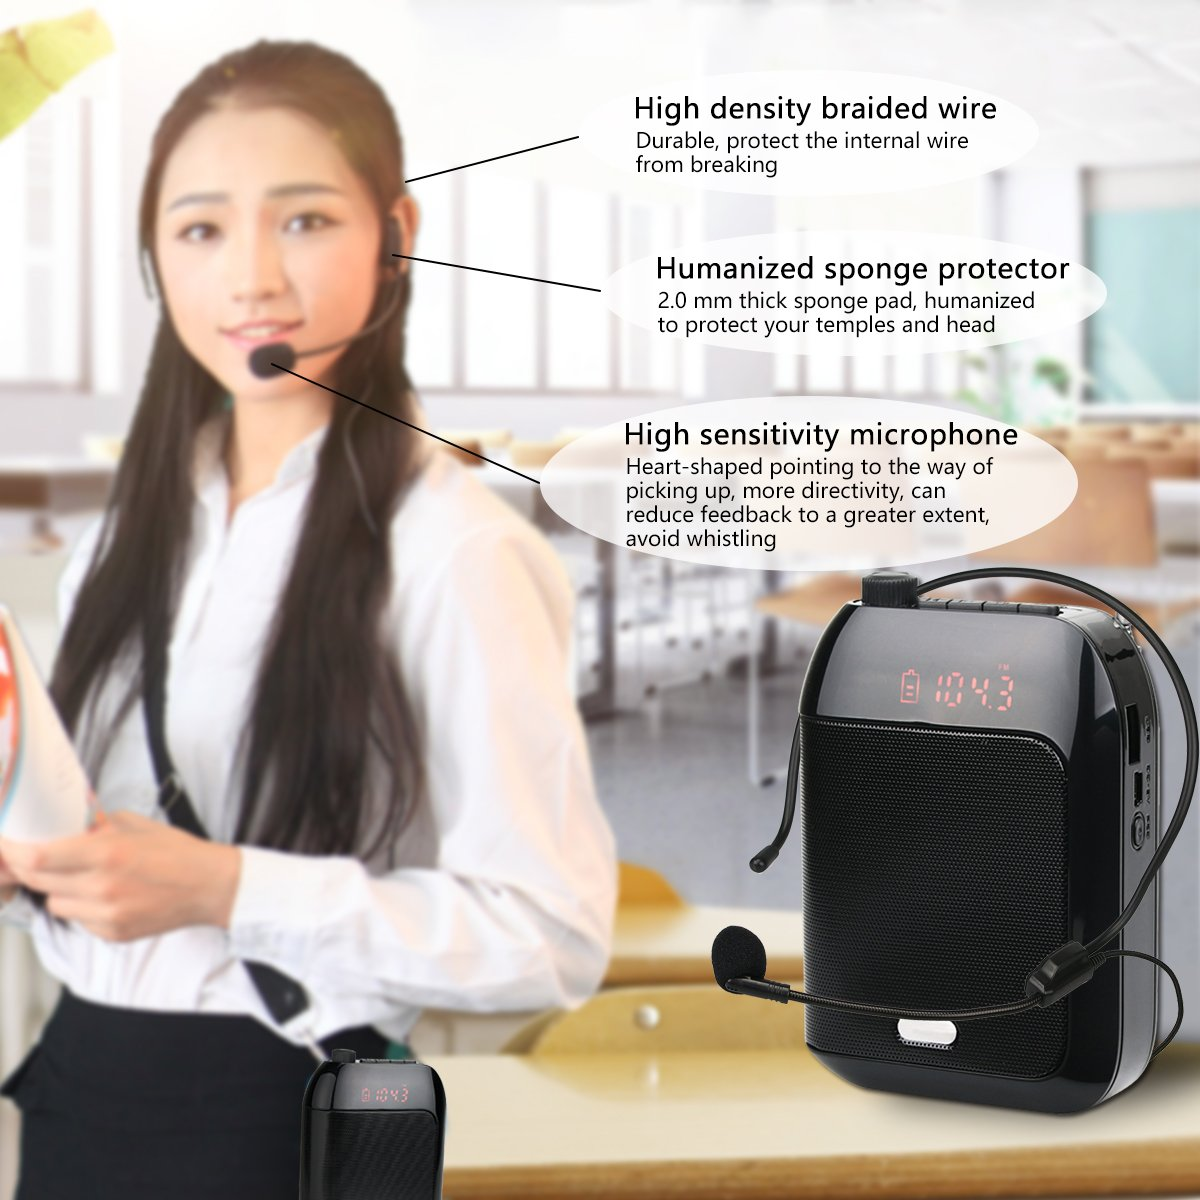 Retekess T9 15W Portable Voice Amplifier Rechargeable Mini With Wired Microphone Headset FM AUX In Jack MP3 Player Voice Recording for Teachers Coaches Training Fitness Class(Black) by Retekess (Image #7)